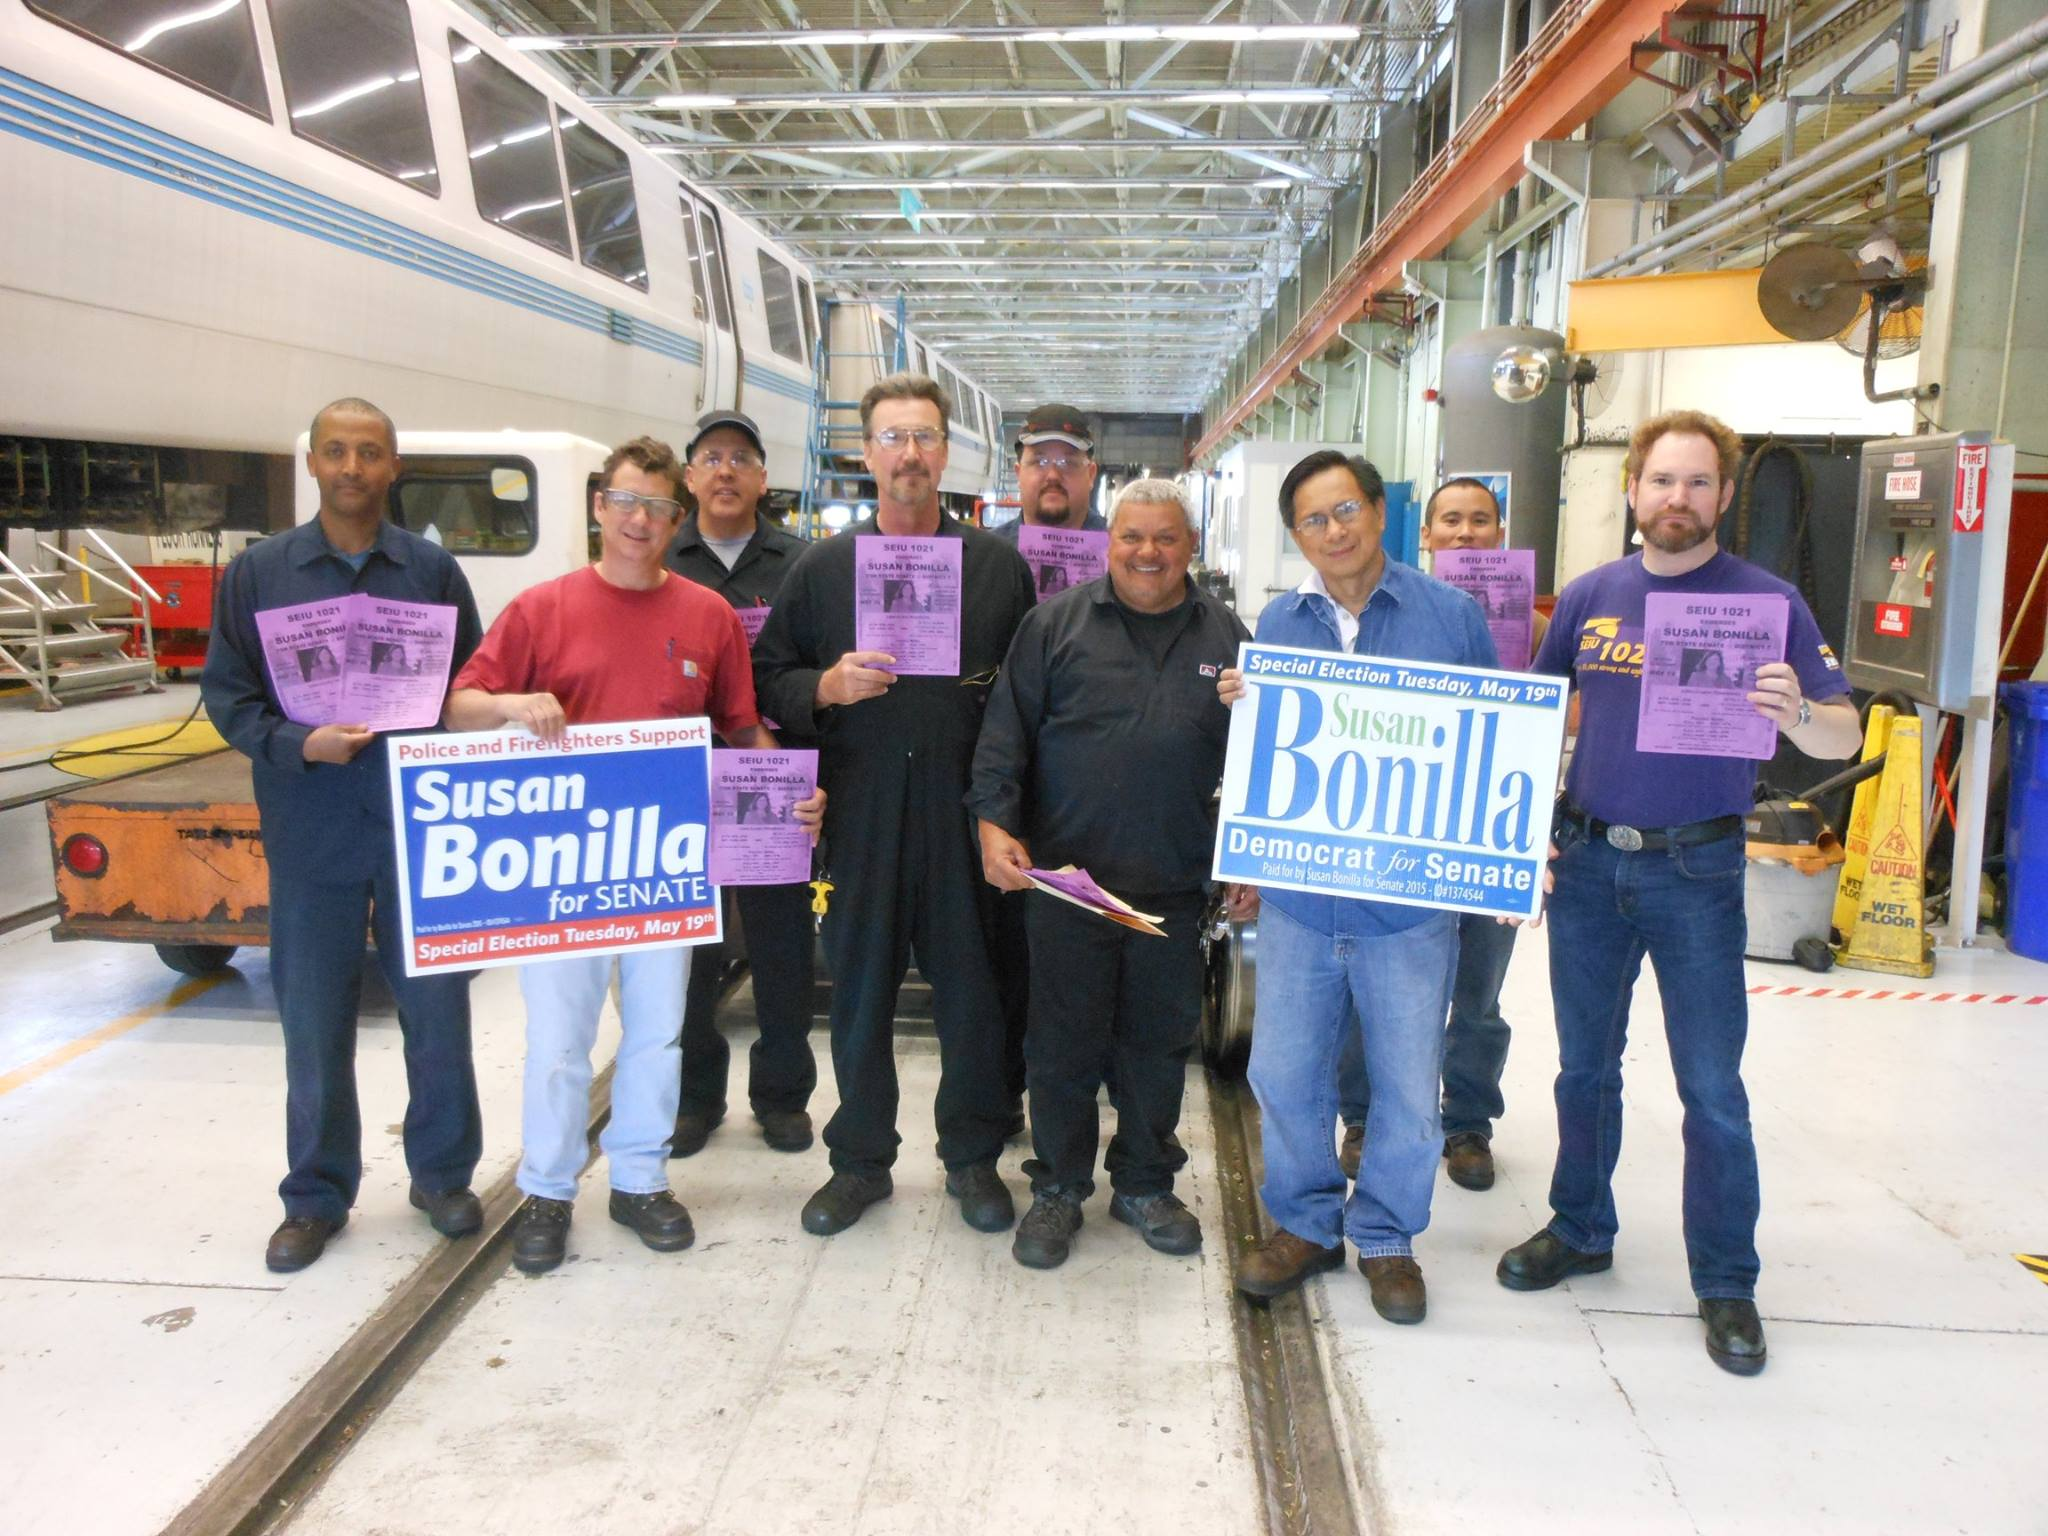 RIC2-BART_Richmond_Yard-Shift_No._1_rallies_for_Susan_Bonilla.jpg